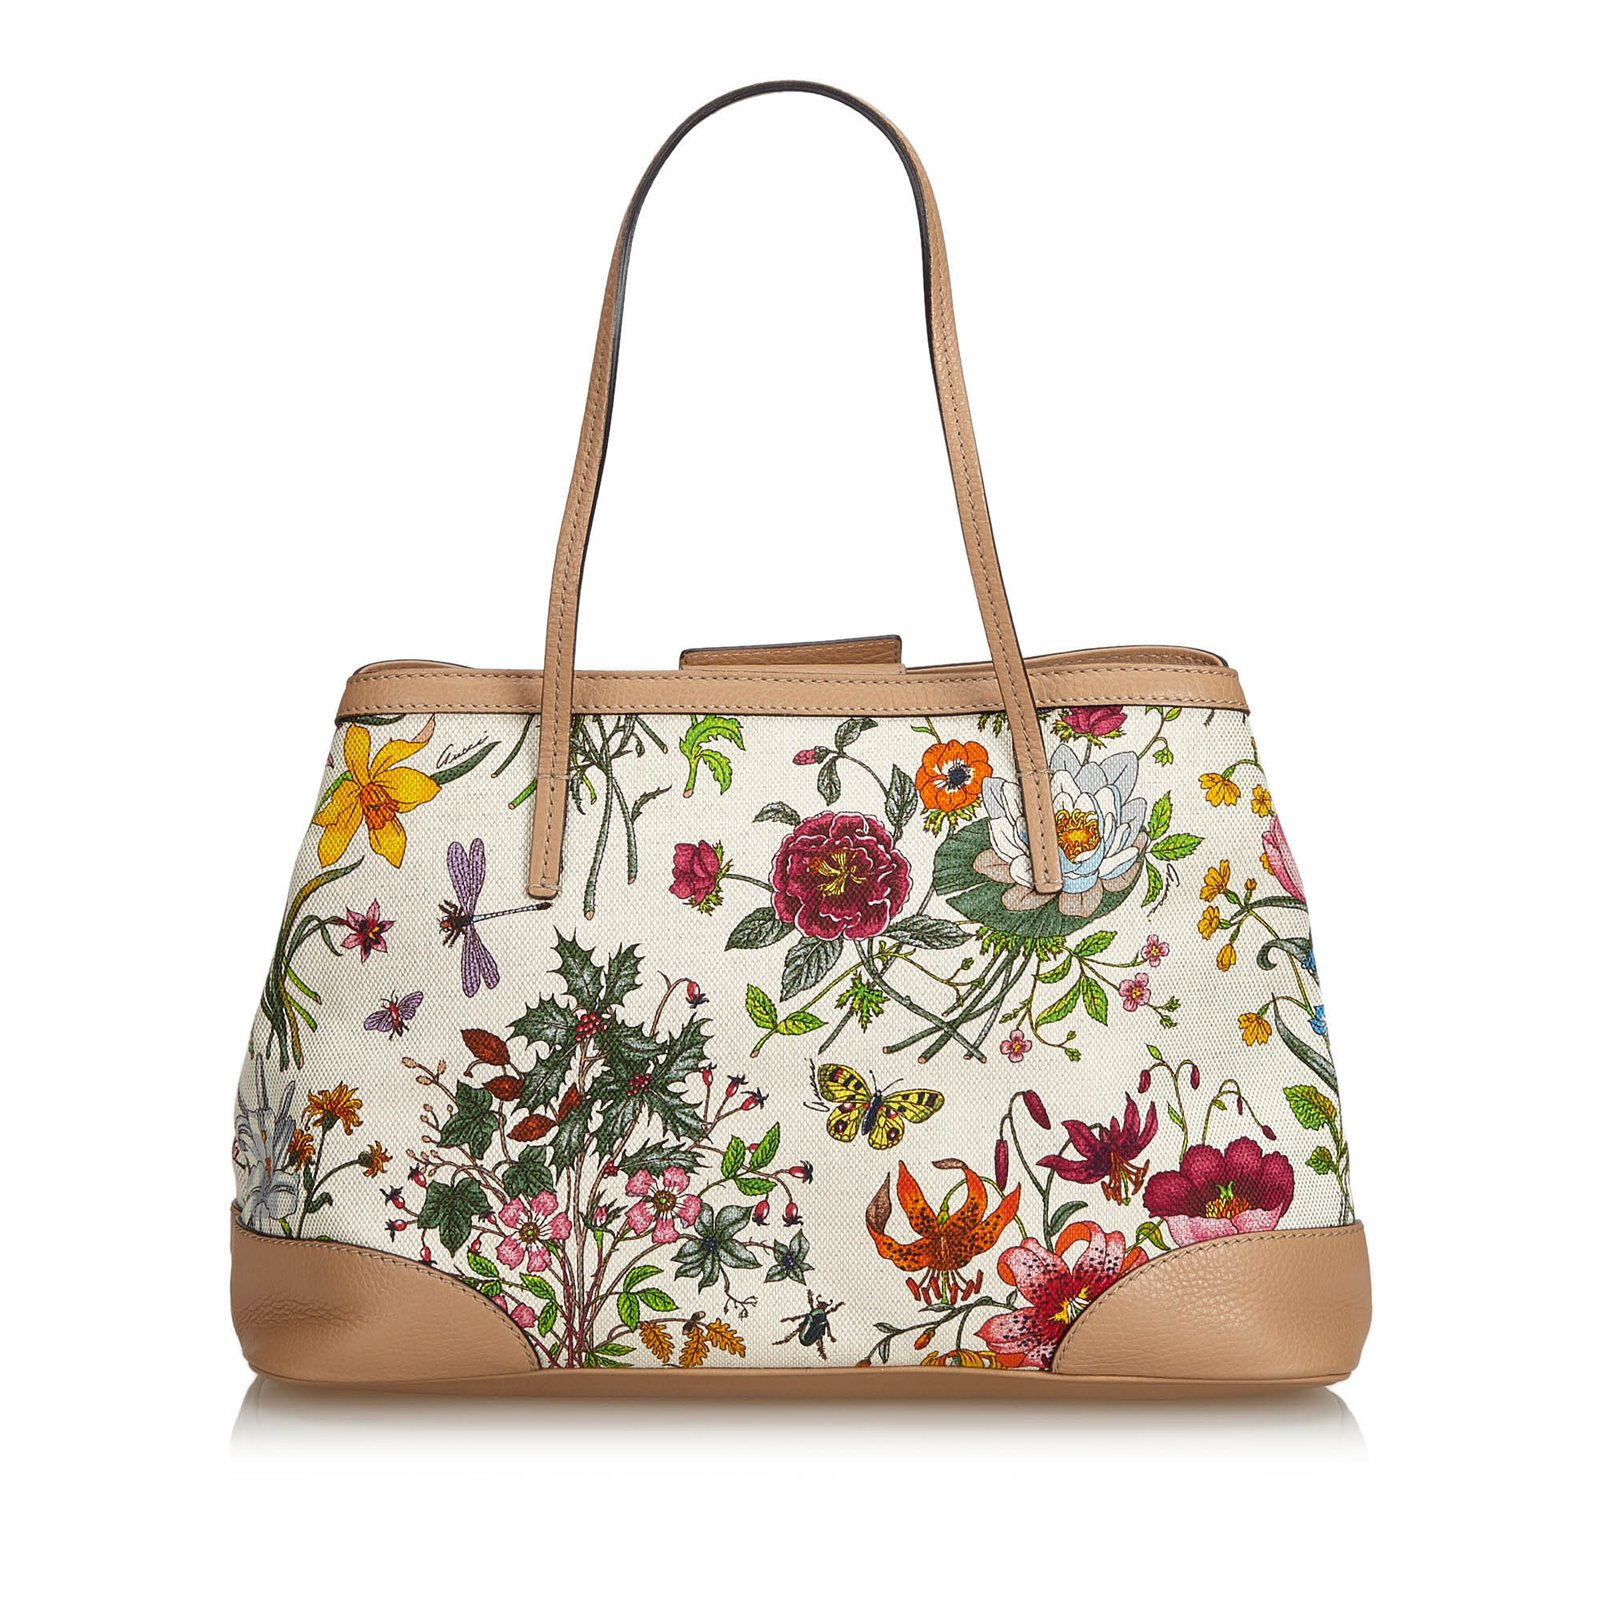 1fbf4f4617d1 Gucci Canvas Floral Tote Bag Totes Leather,Other,Cloth,Cloth White,Multiple  colors ref.102263 - Joli Closet